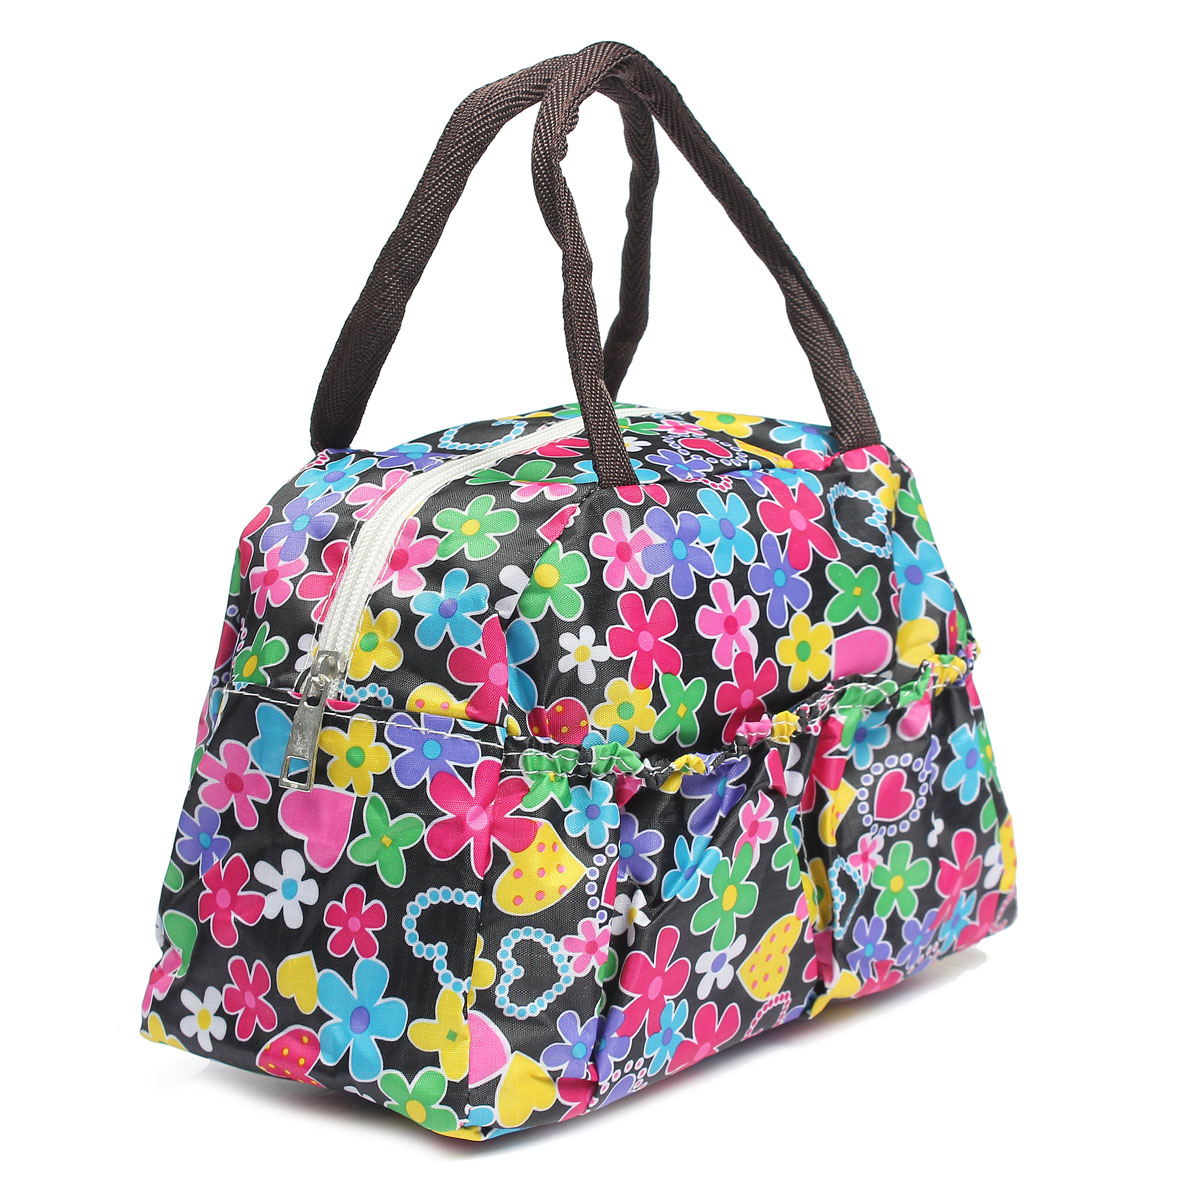 Portable-Bento-Lunch-Box-Bag-Insulated-Thermal-Waterproof-Picnic-Carry-Tote thumbnail 8